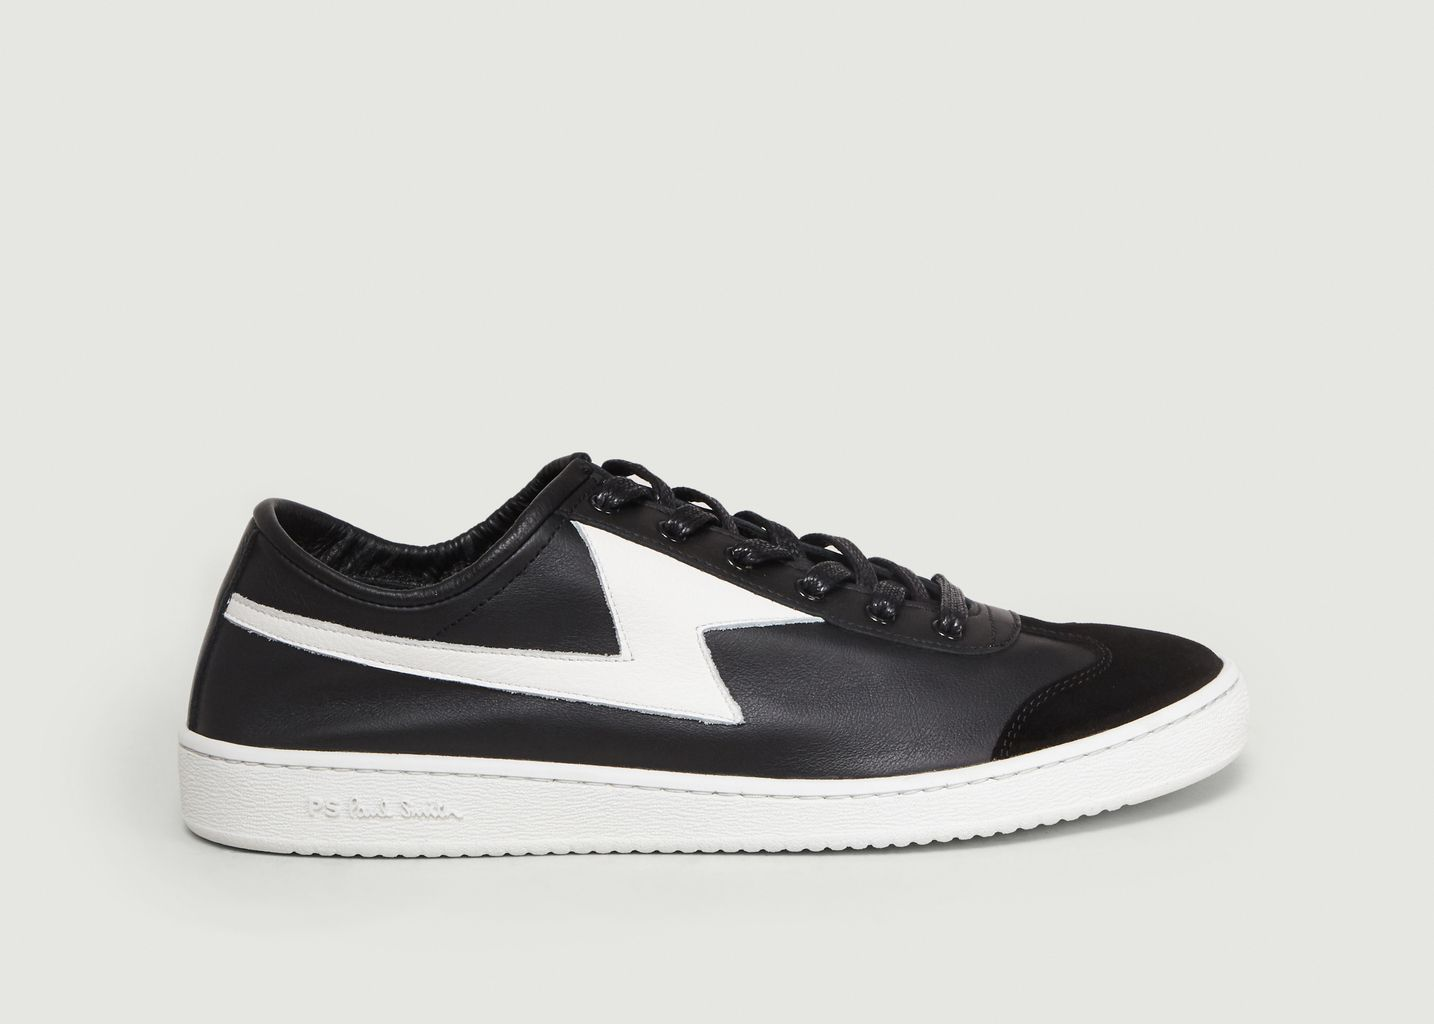 Sneakers Ziggy  - PS by PAUL SMITH